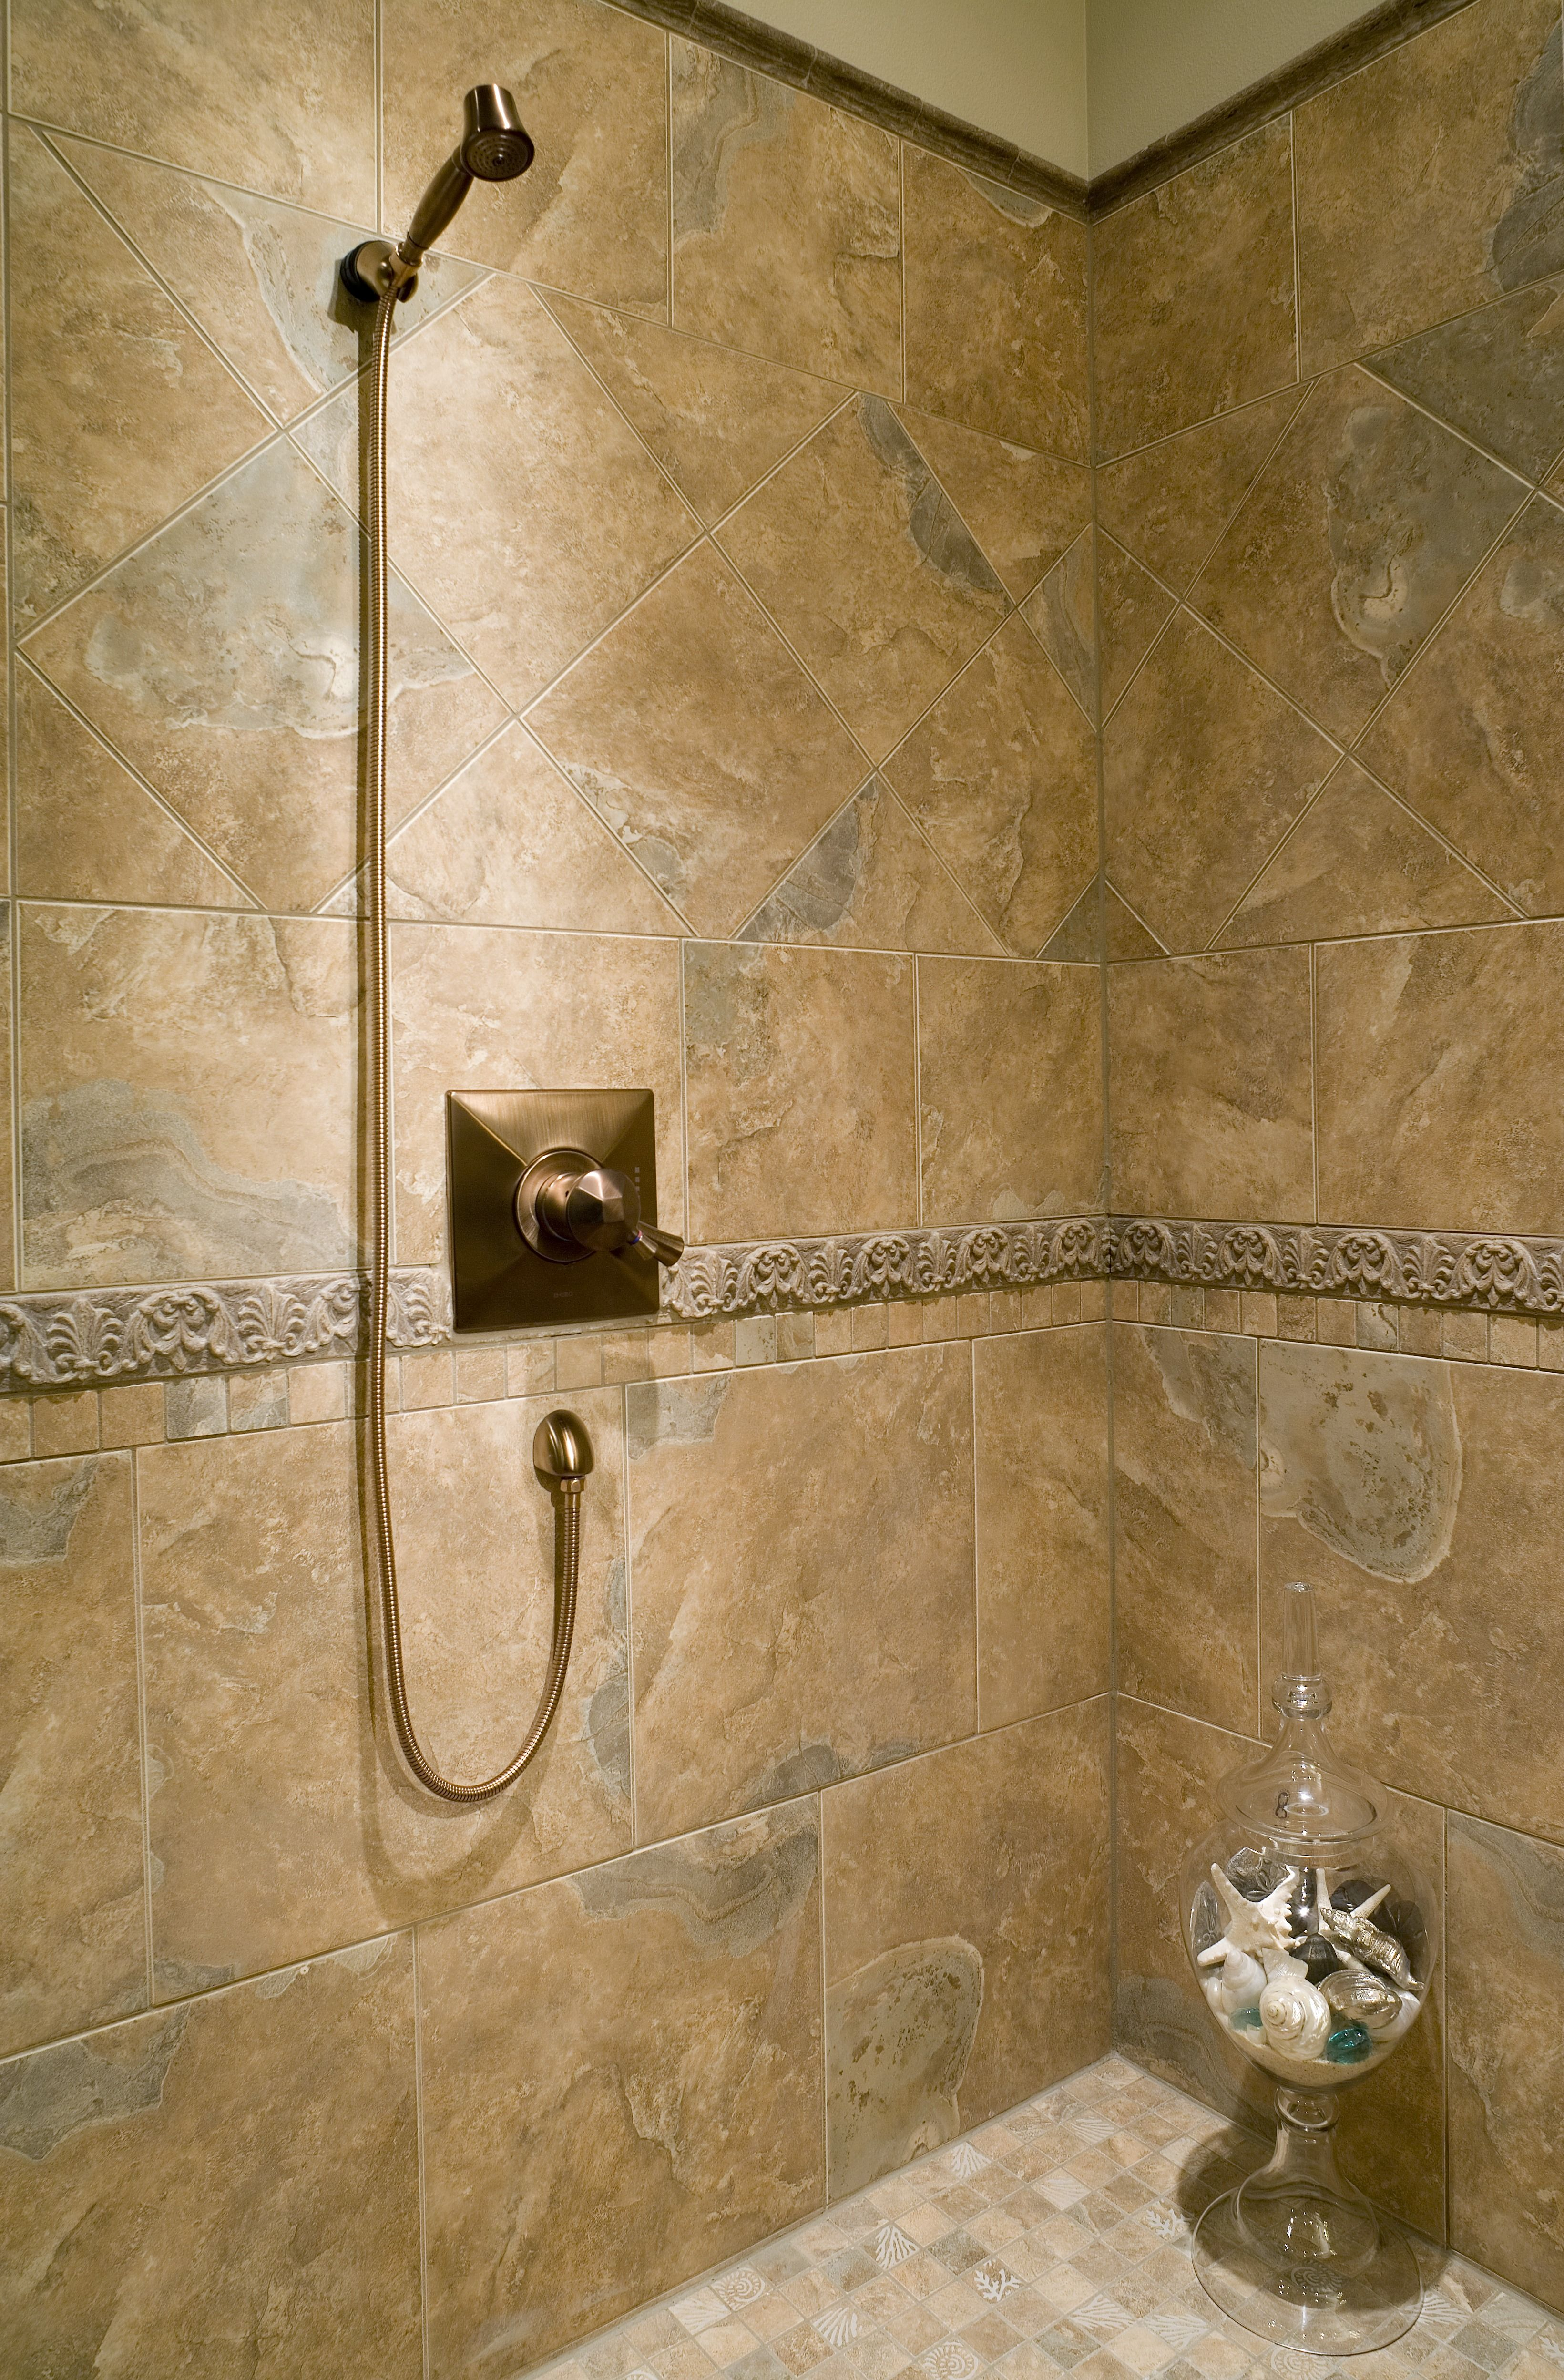 Light tan stone tile covers the walls of this shower. There is ...